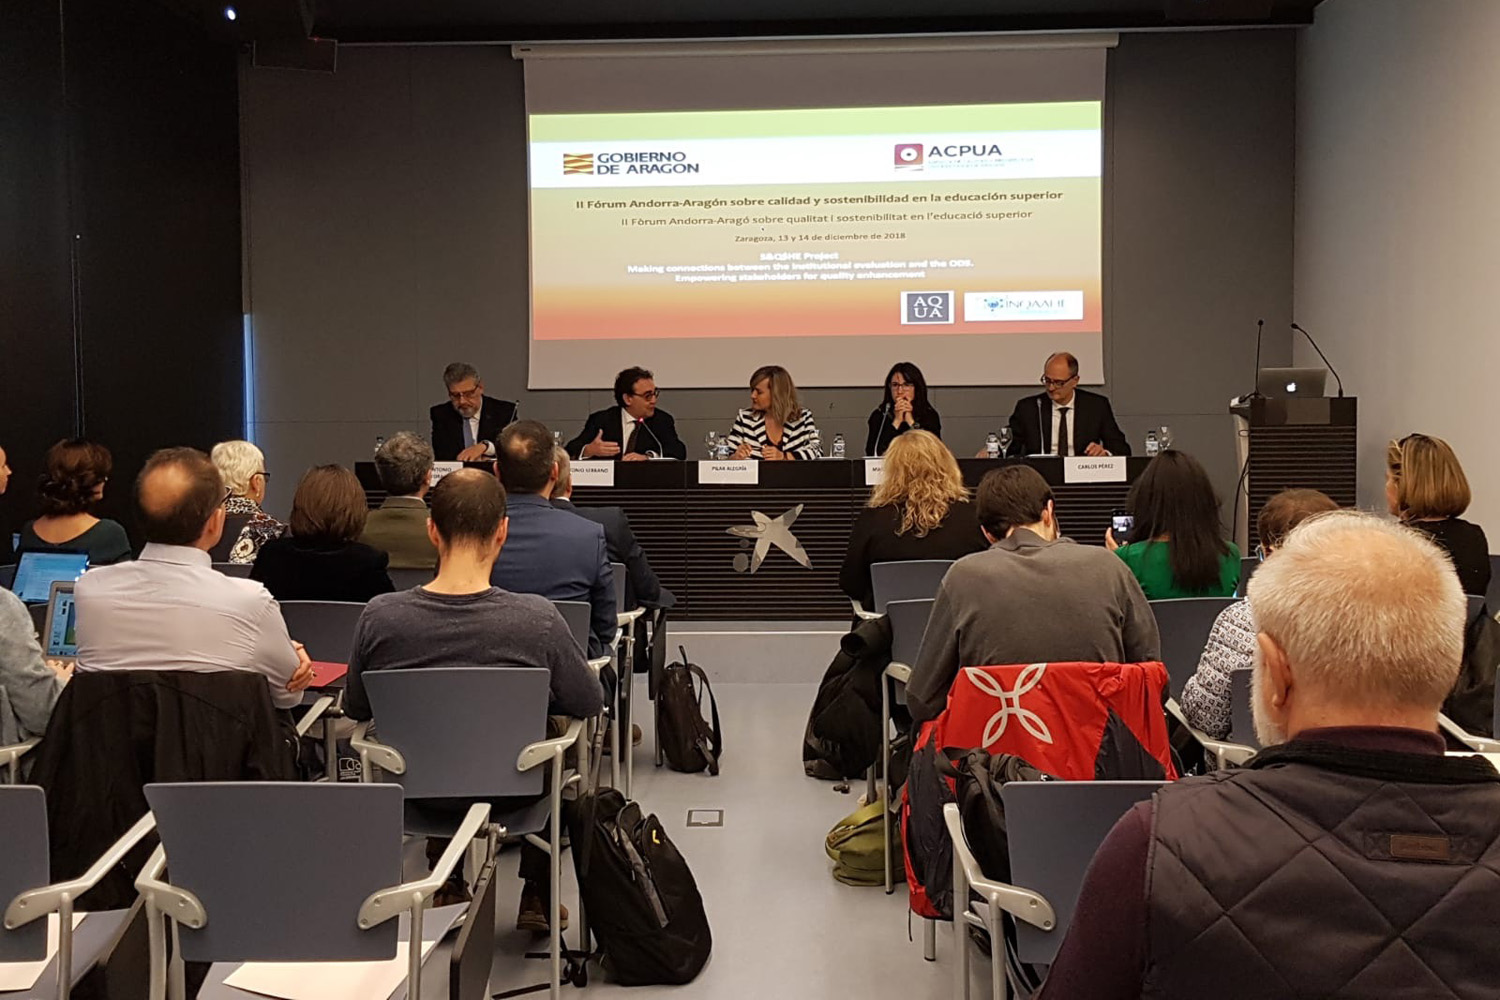 Authorities from the Government of Aragon and the rectors of the Zaragoza's and San Jorge's University opening the II Forum